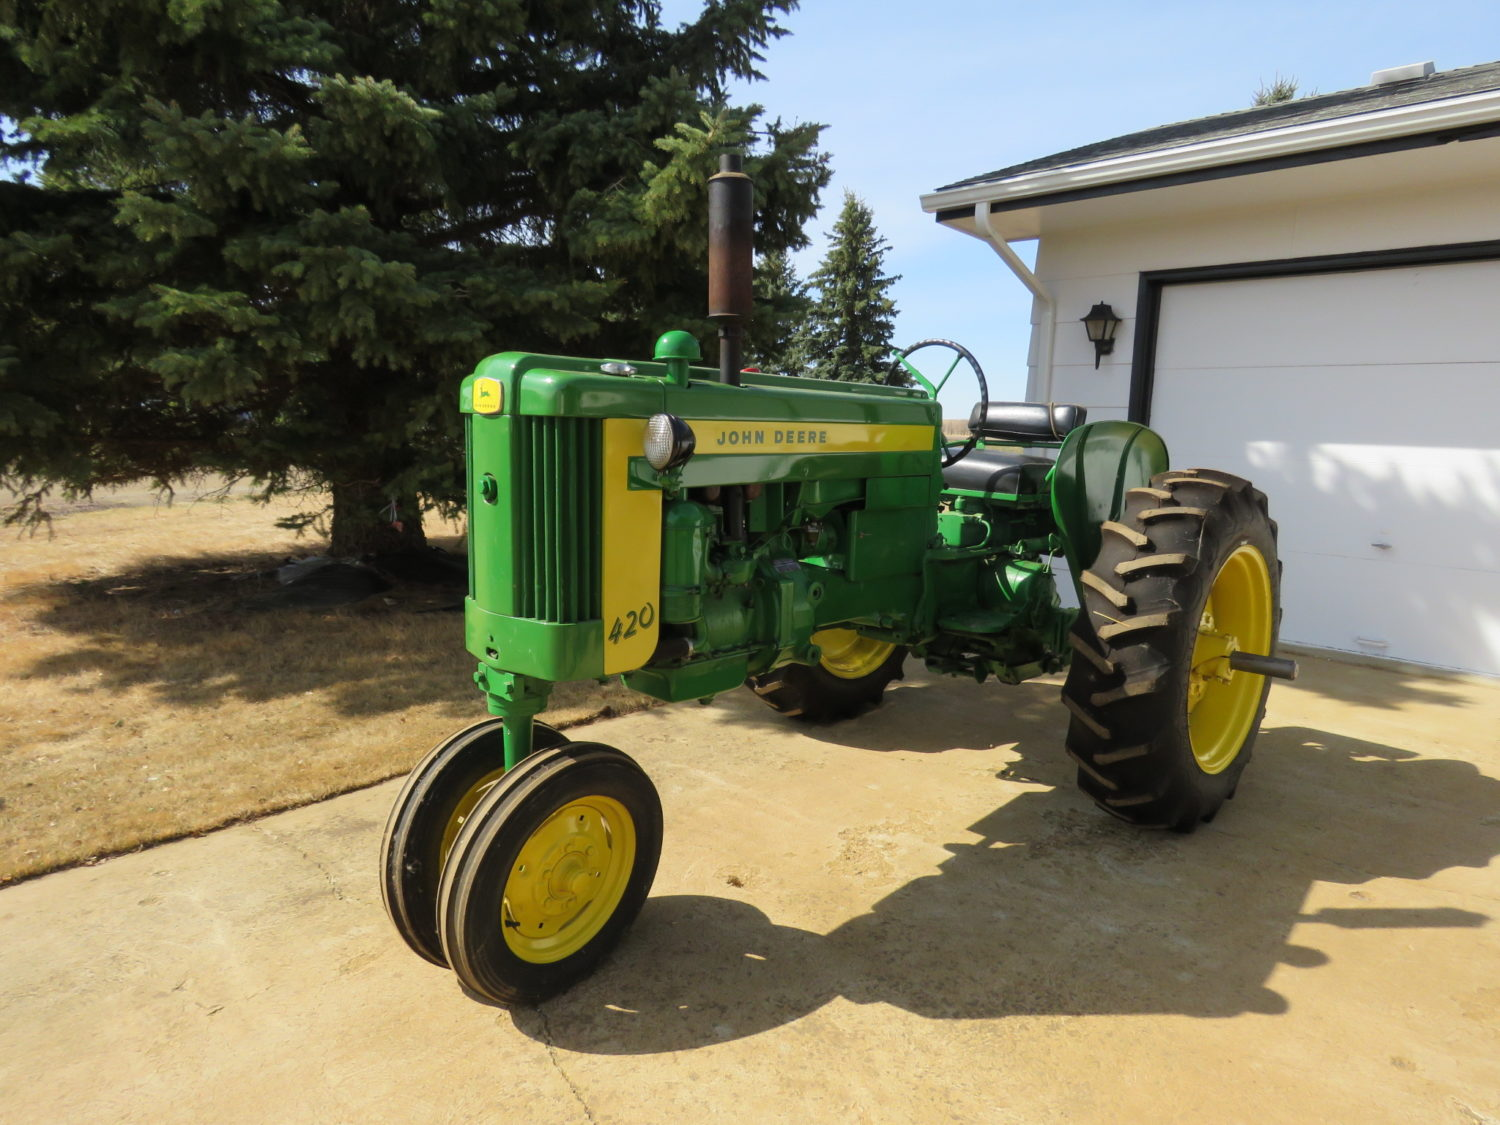 Fabulous Collector Cars, Antique Tractors, Memorabilia & More! The Krinke Collection - image 17